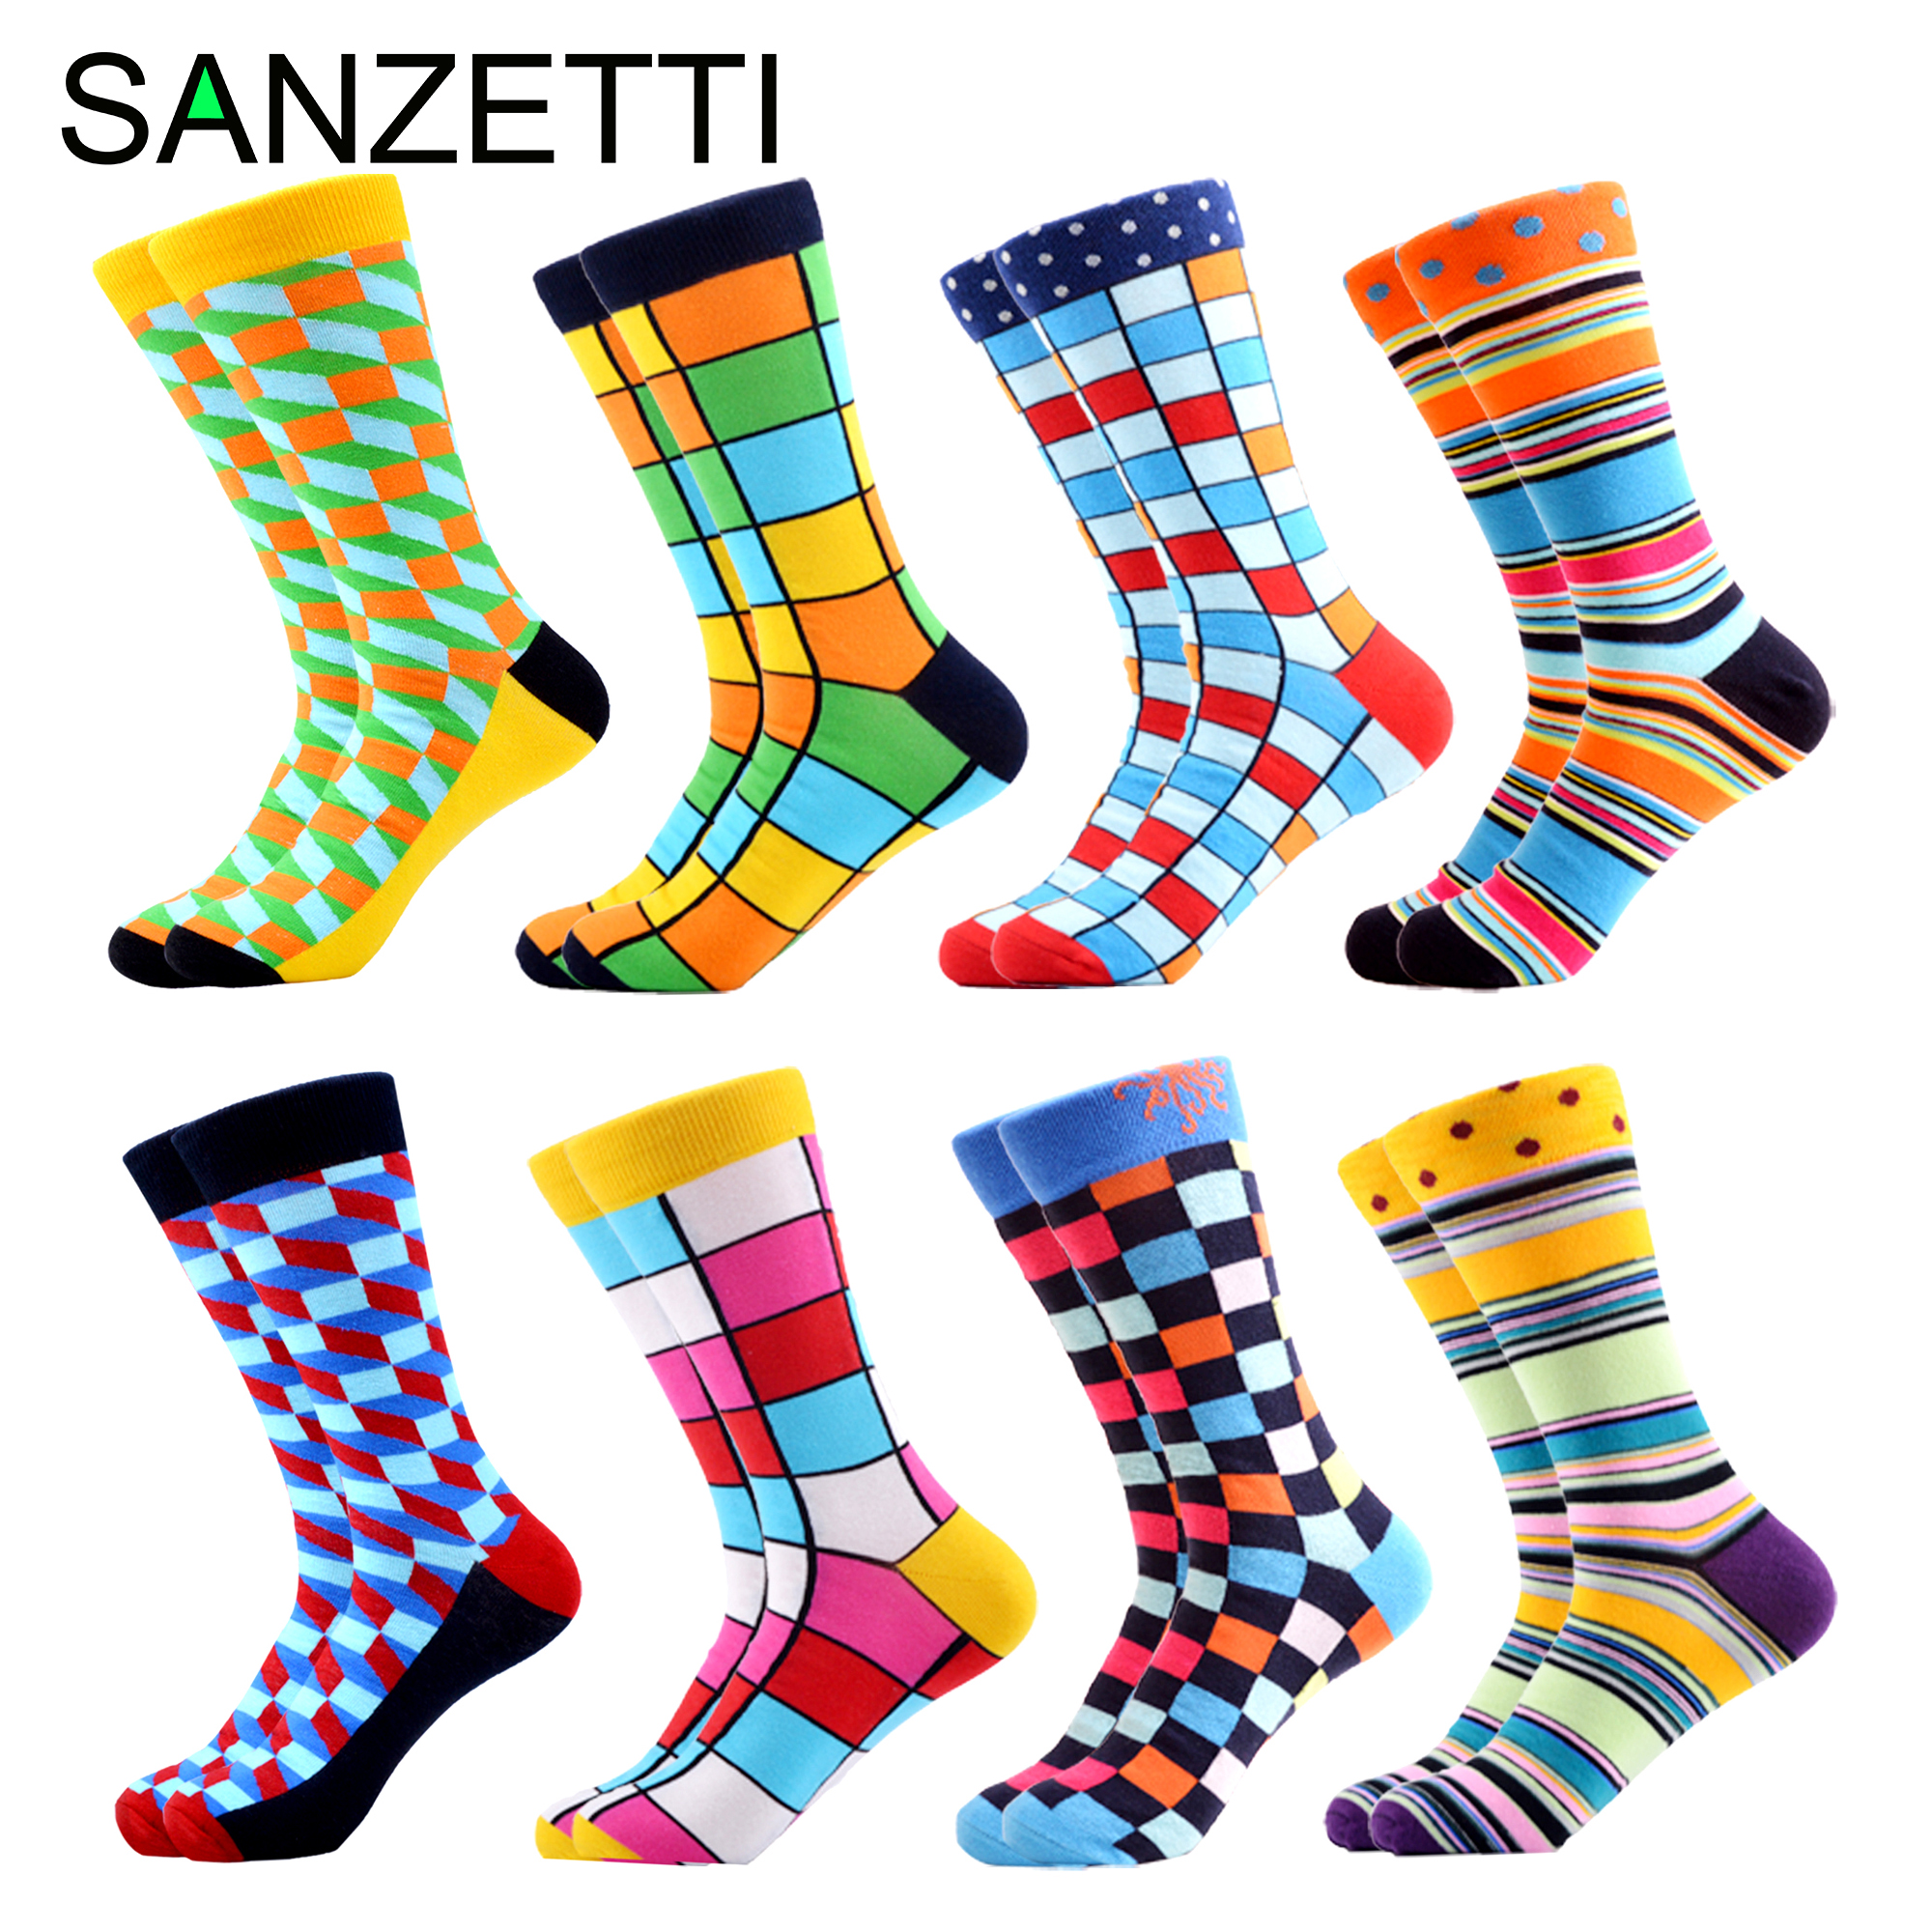 SANZETTI 8 Pair/Lot Men Colorful Harajuku Happy Combed Cotton Crew Socks Calcetines Hombre Breathable Bright Novelty Dress Socks